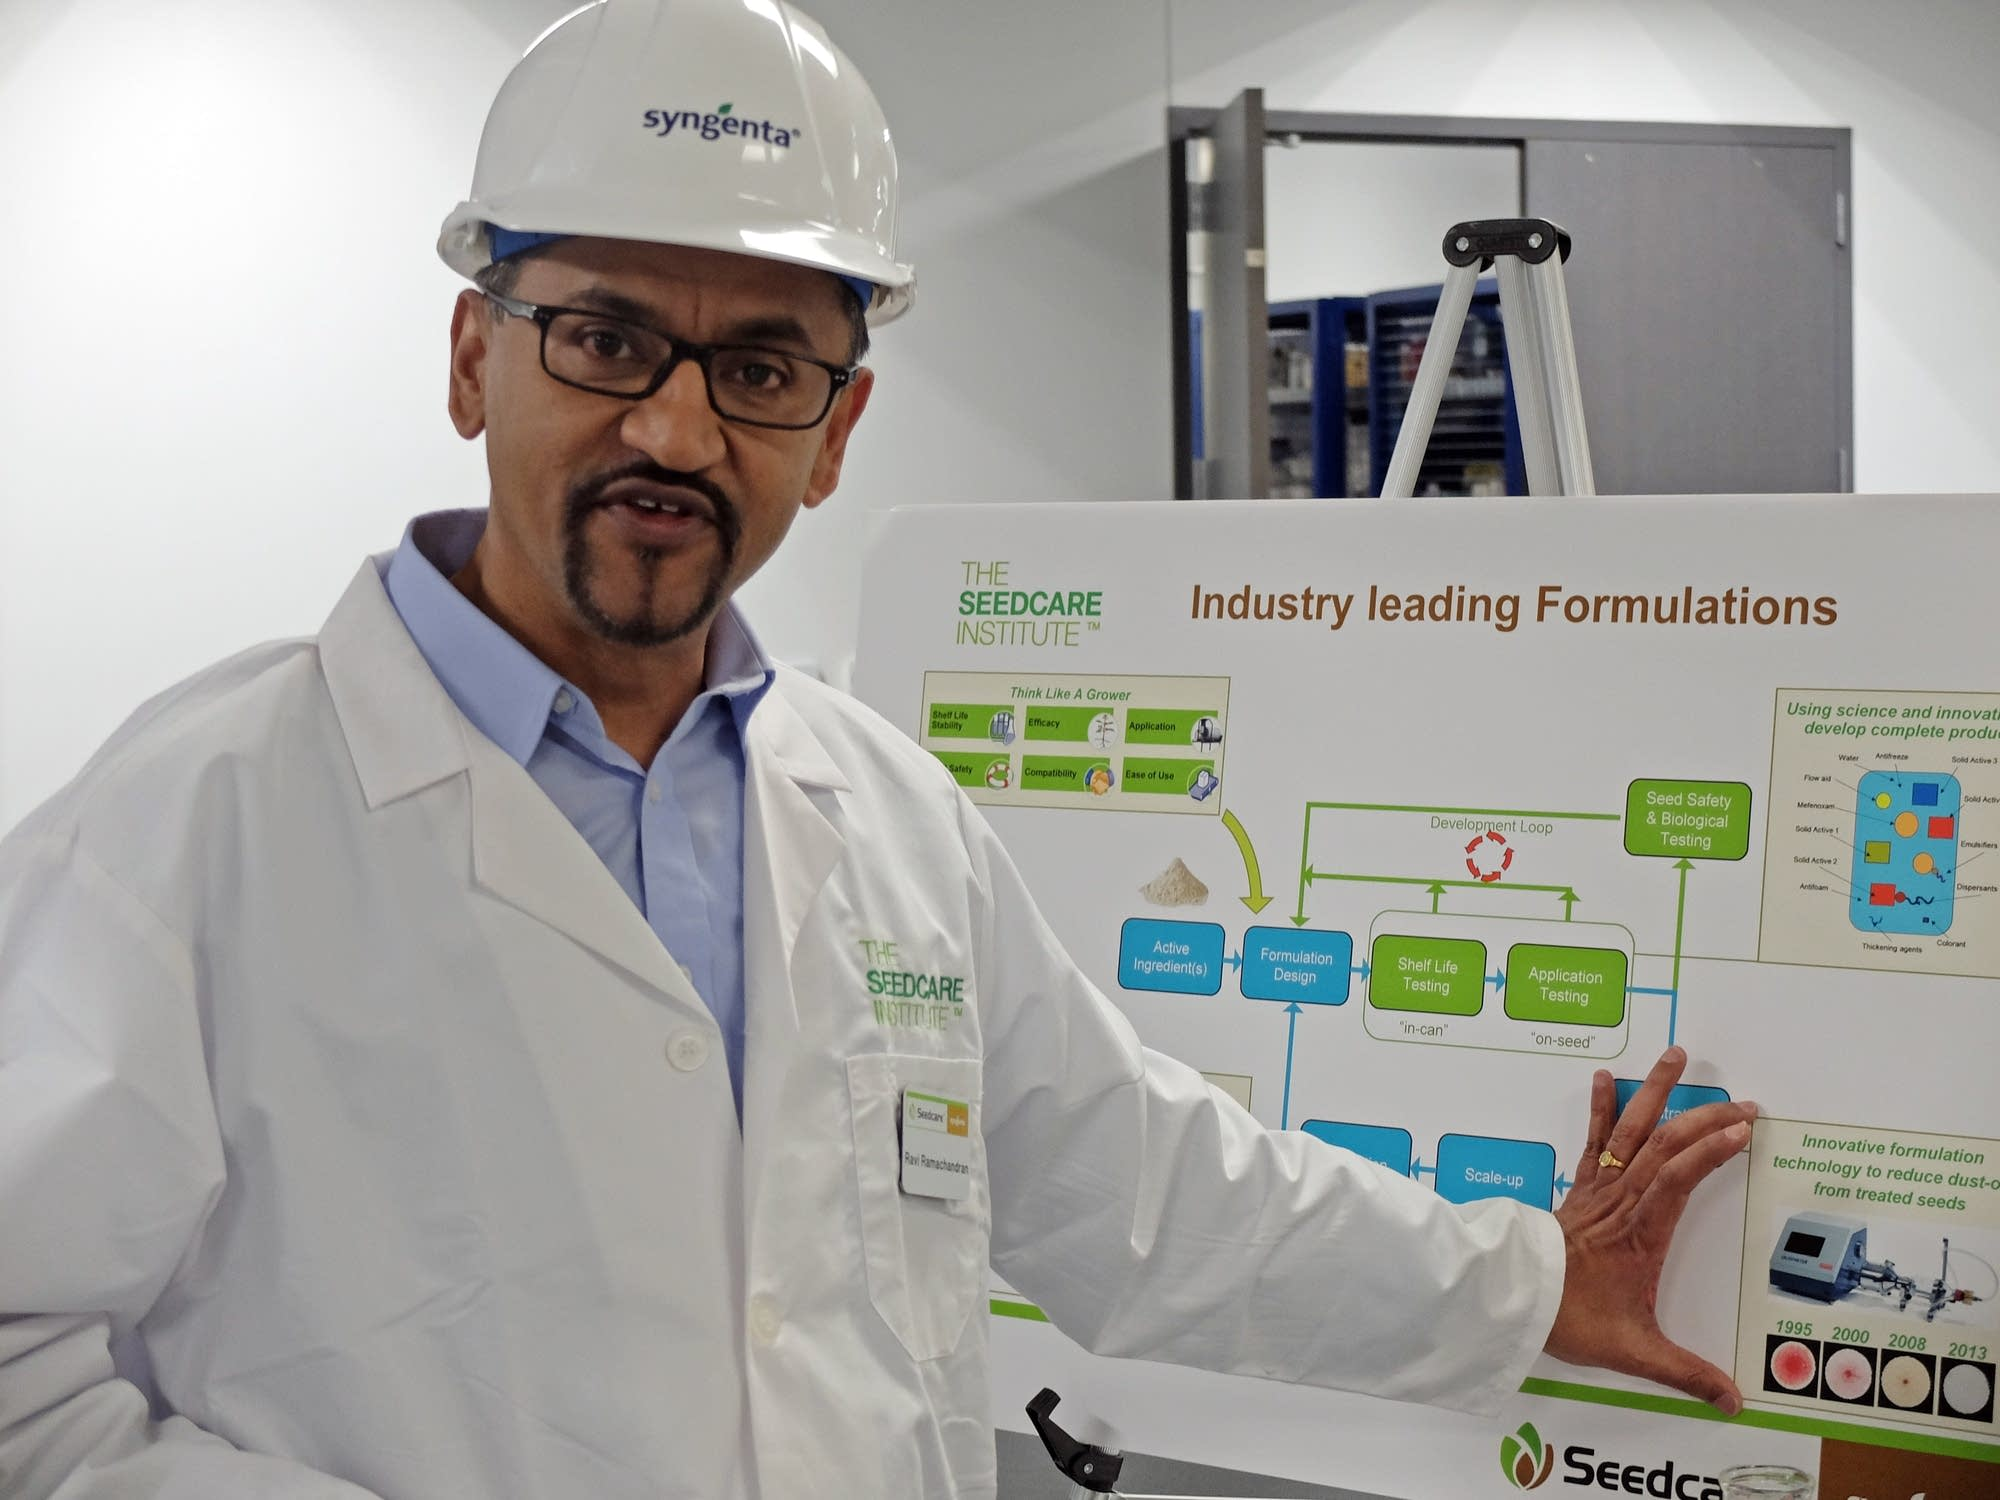 The head of the Syngenta Seedcare Institute, Ravi Ramachandran